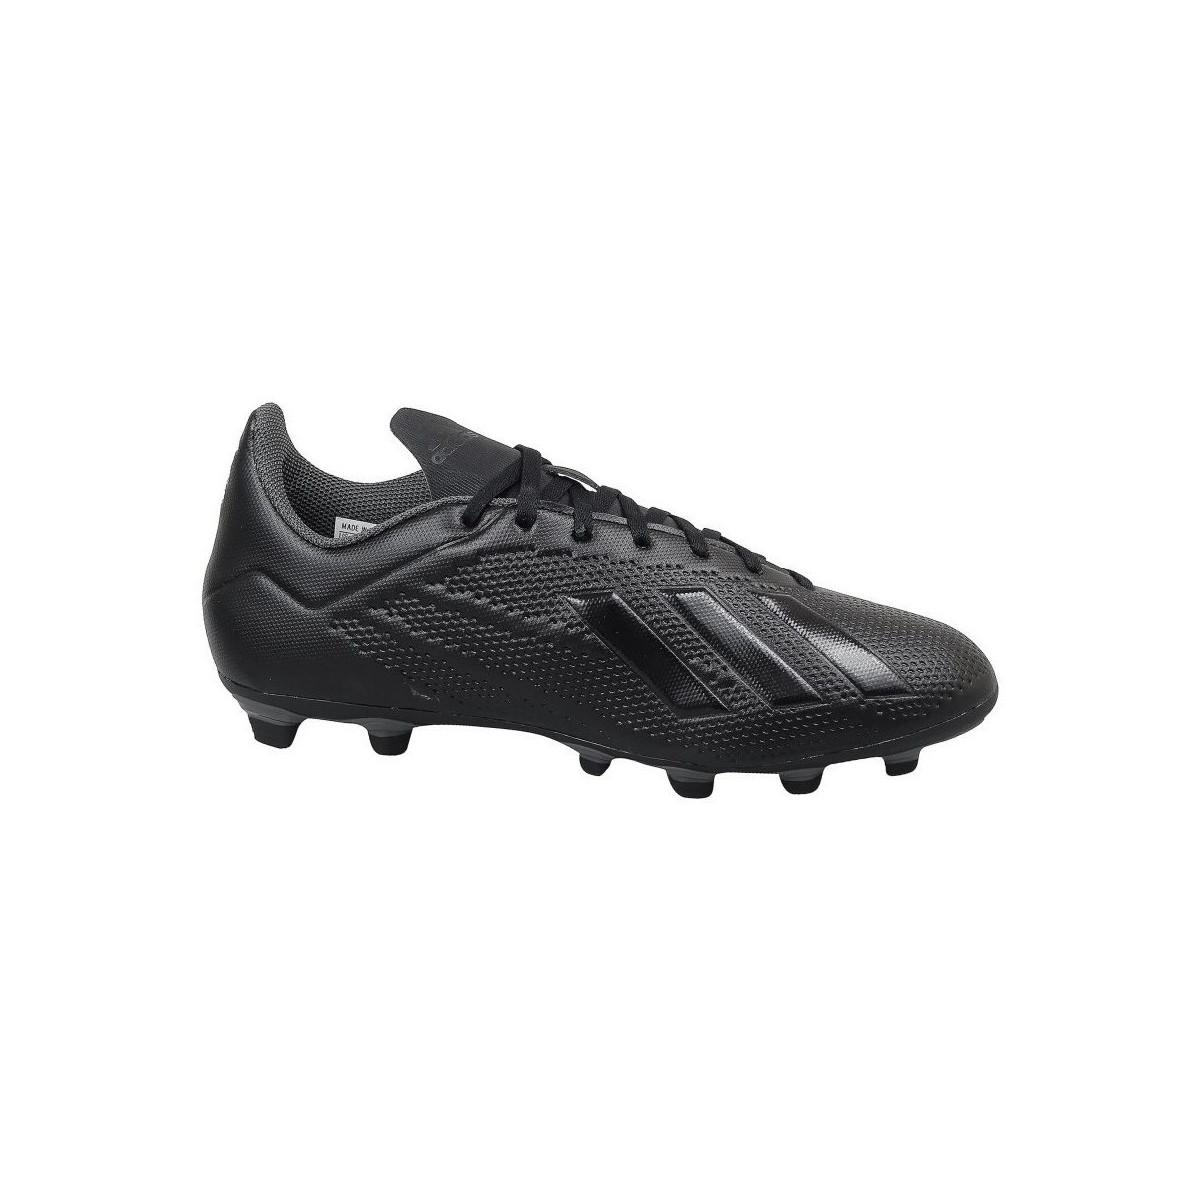 3d962dc79 adidas X 184 Fg Men's Football Boots In Black in Black for Men - Lyst